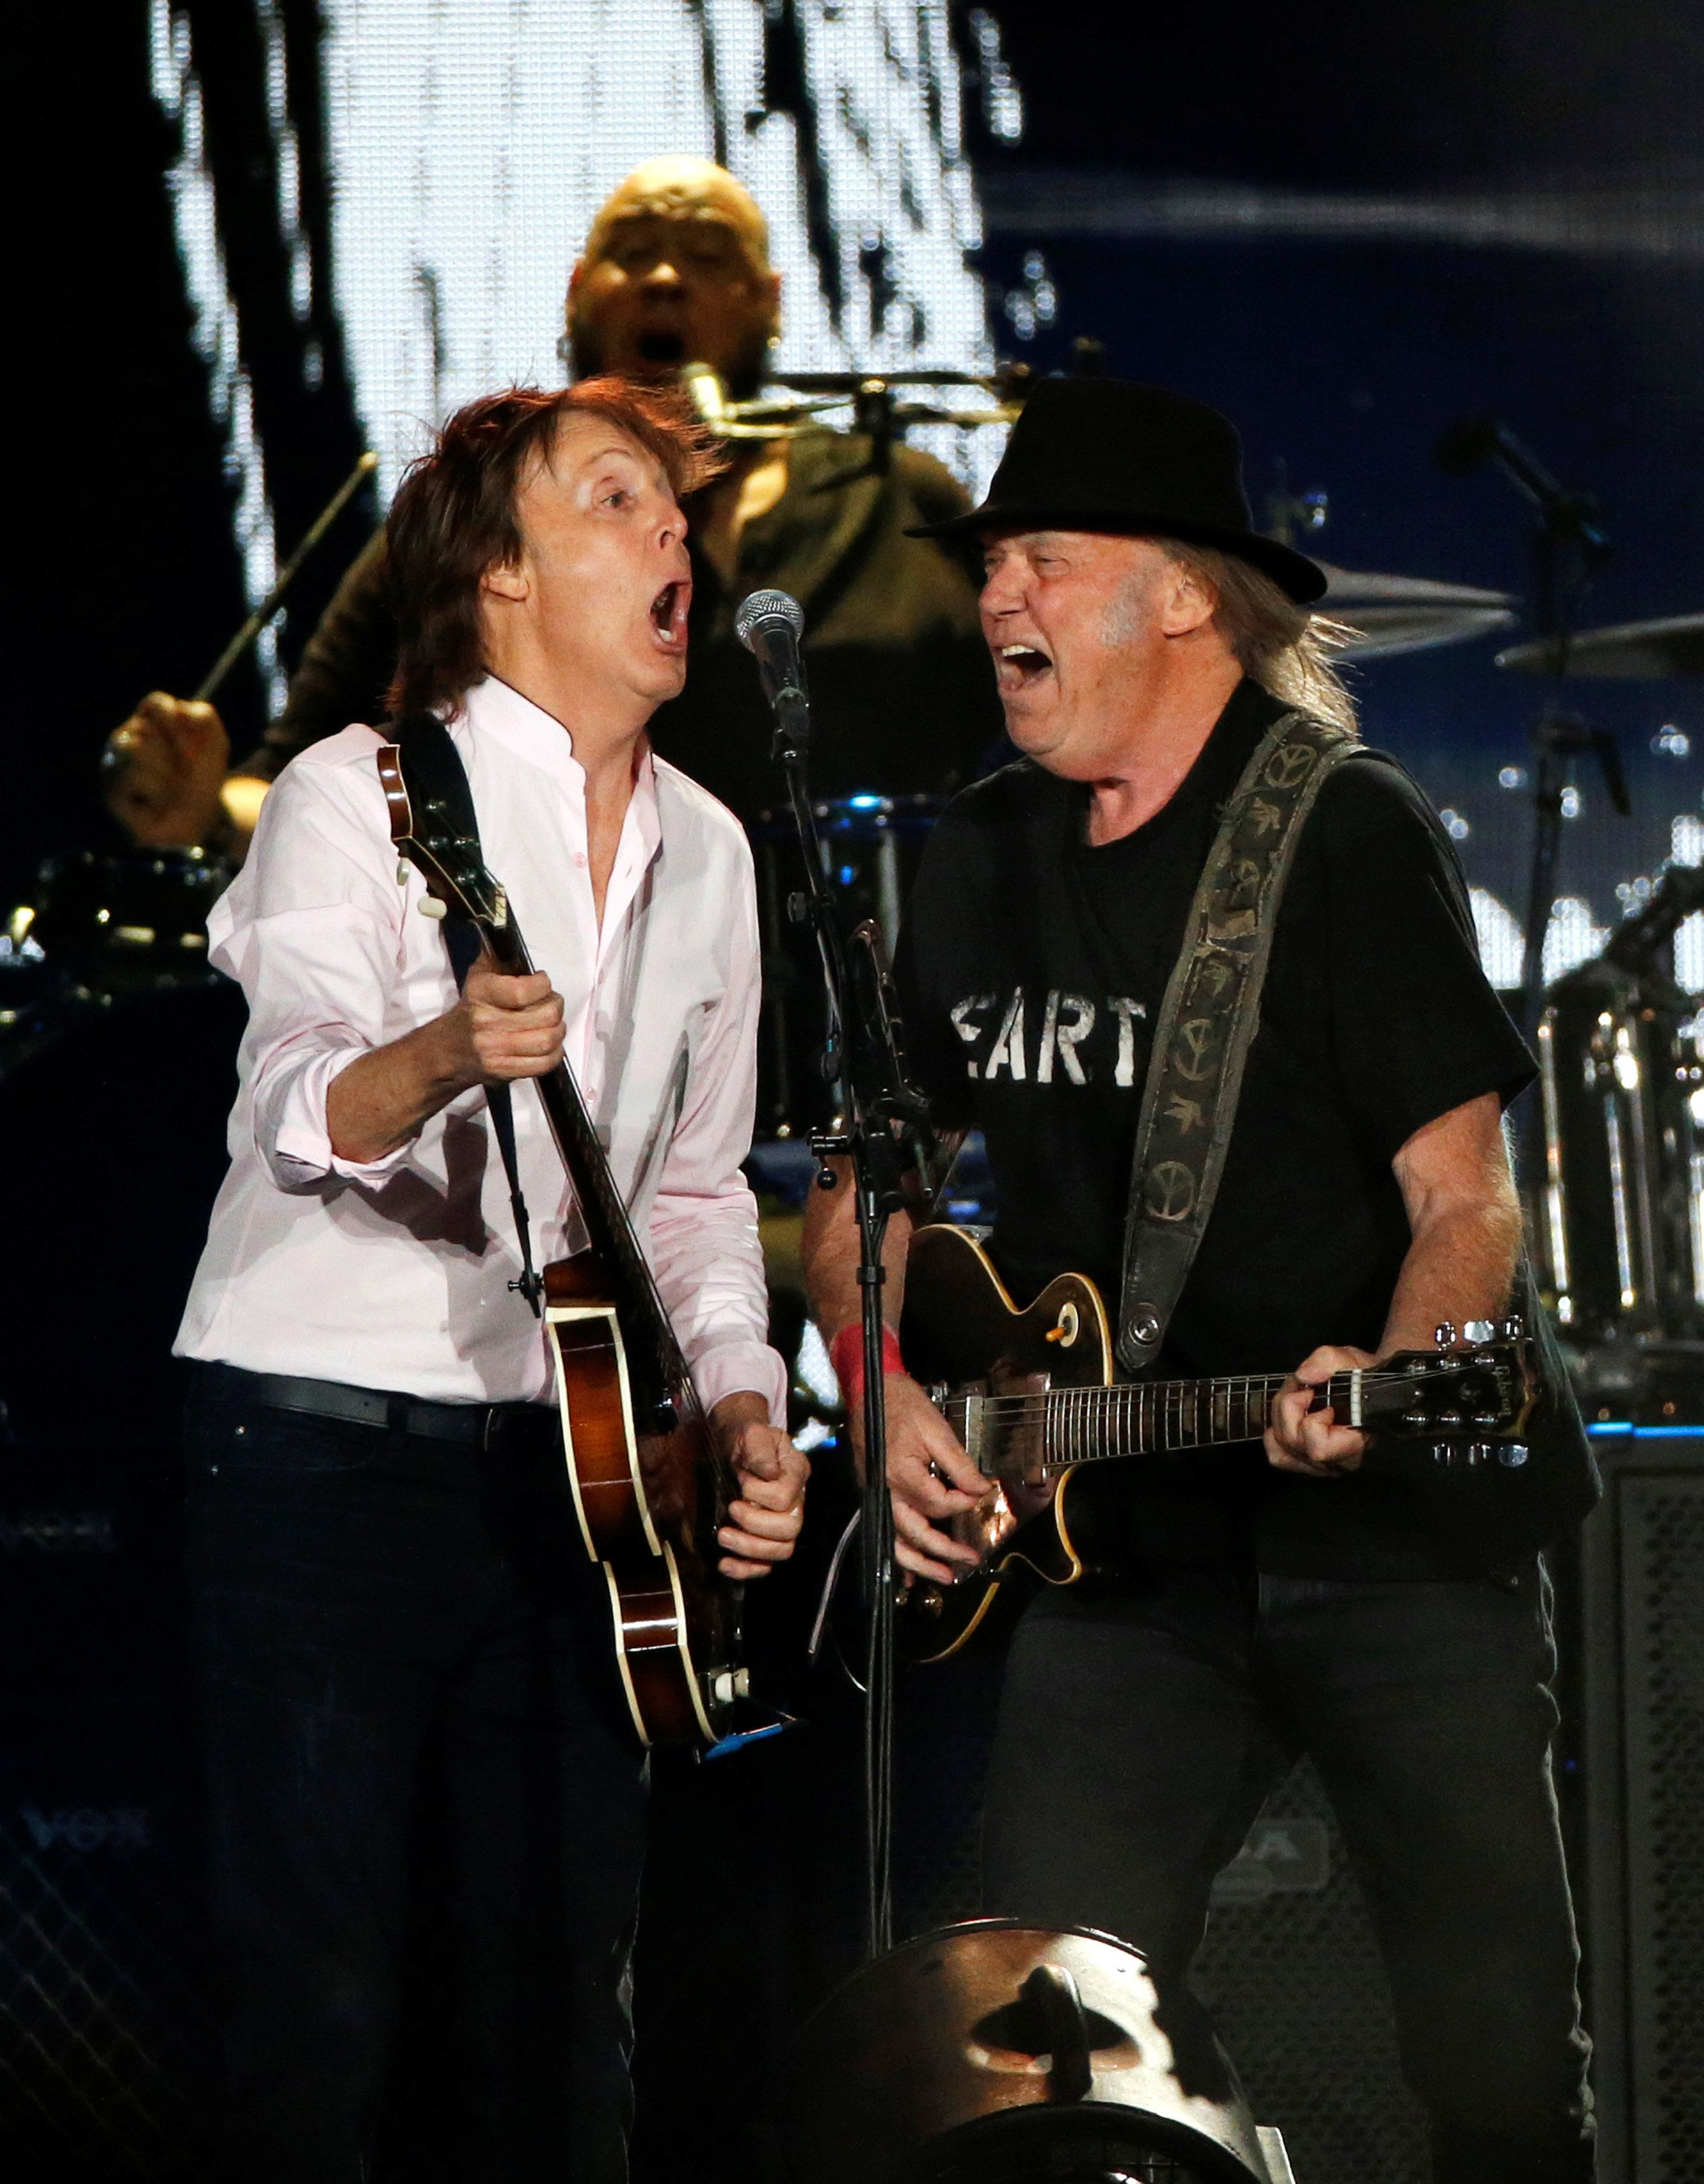 Musicians Paul McCartney (L) and Neil Young perform at Desert Trip music festival at Empire Polo Club in Indio, California U.S., October 8, 2016.   REUTERS/Mario Anzuoni